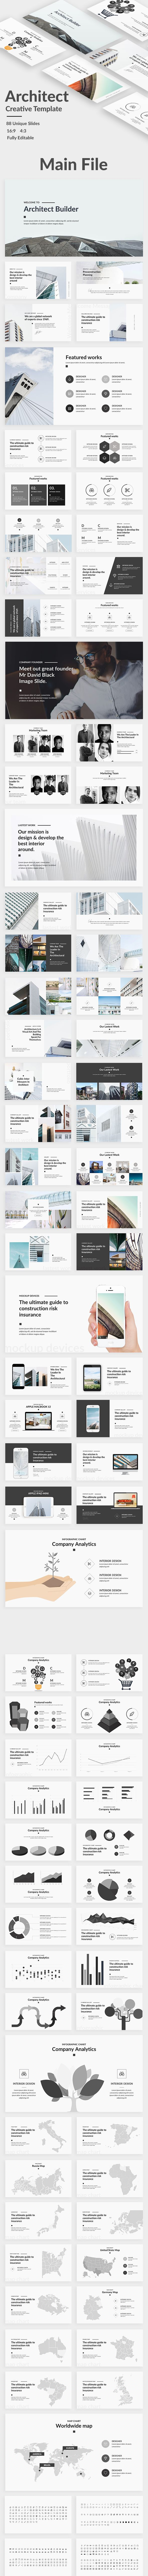 Architect Builder Google Slide Template - #Google Slides #Presentation #Templates Download here: https://graphicriver.net/item/architect-builder-google-slide-template/20315980?ref=alena994